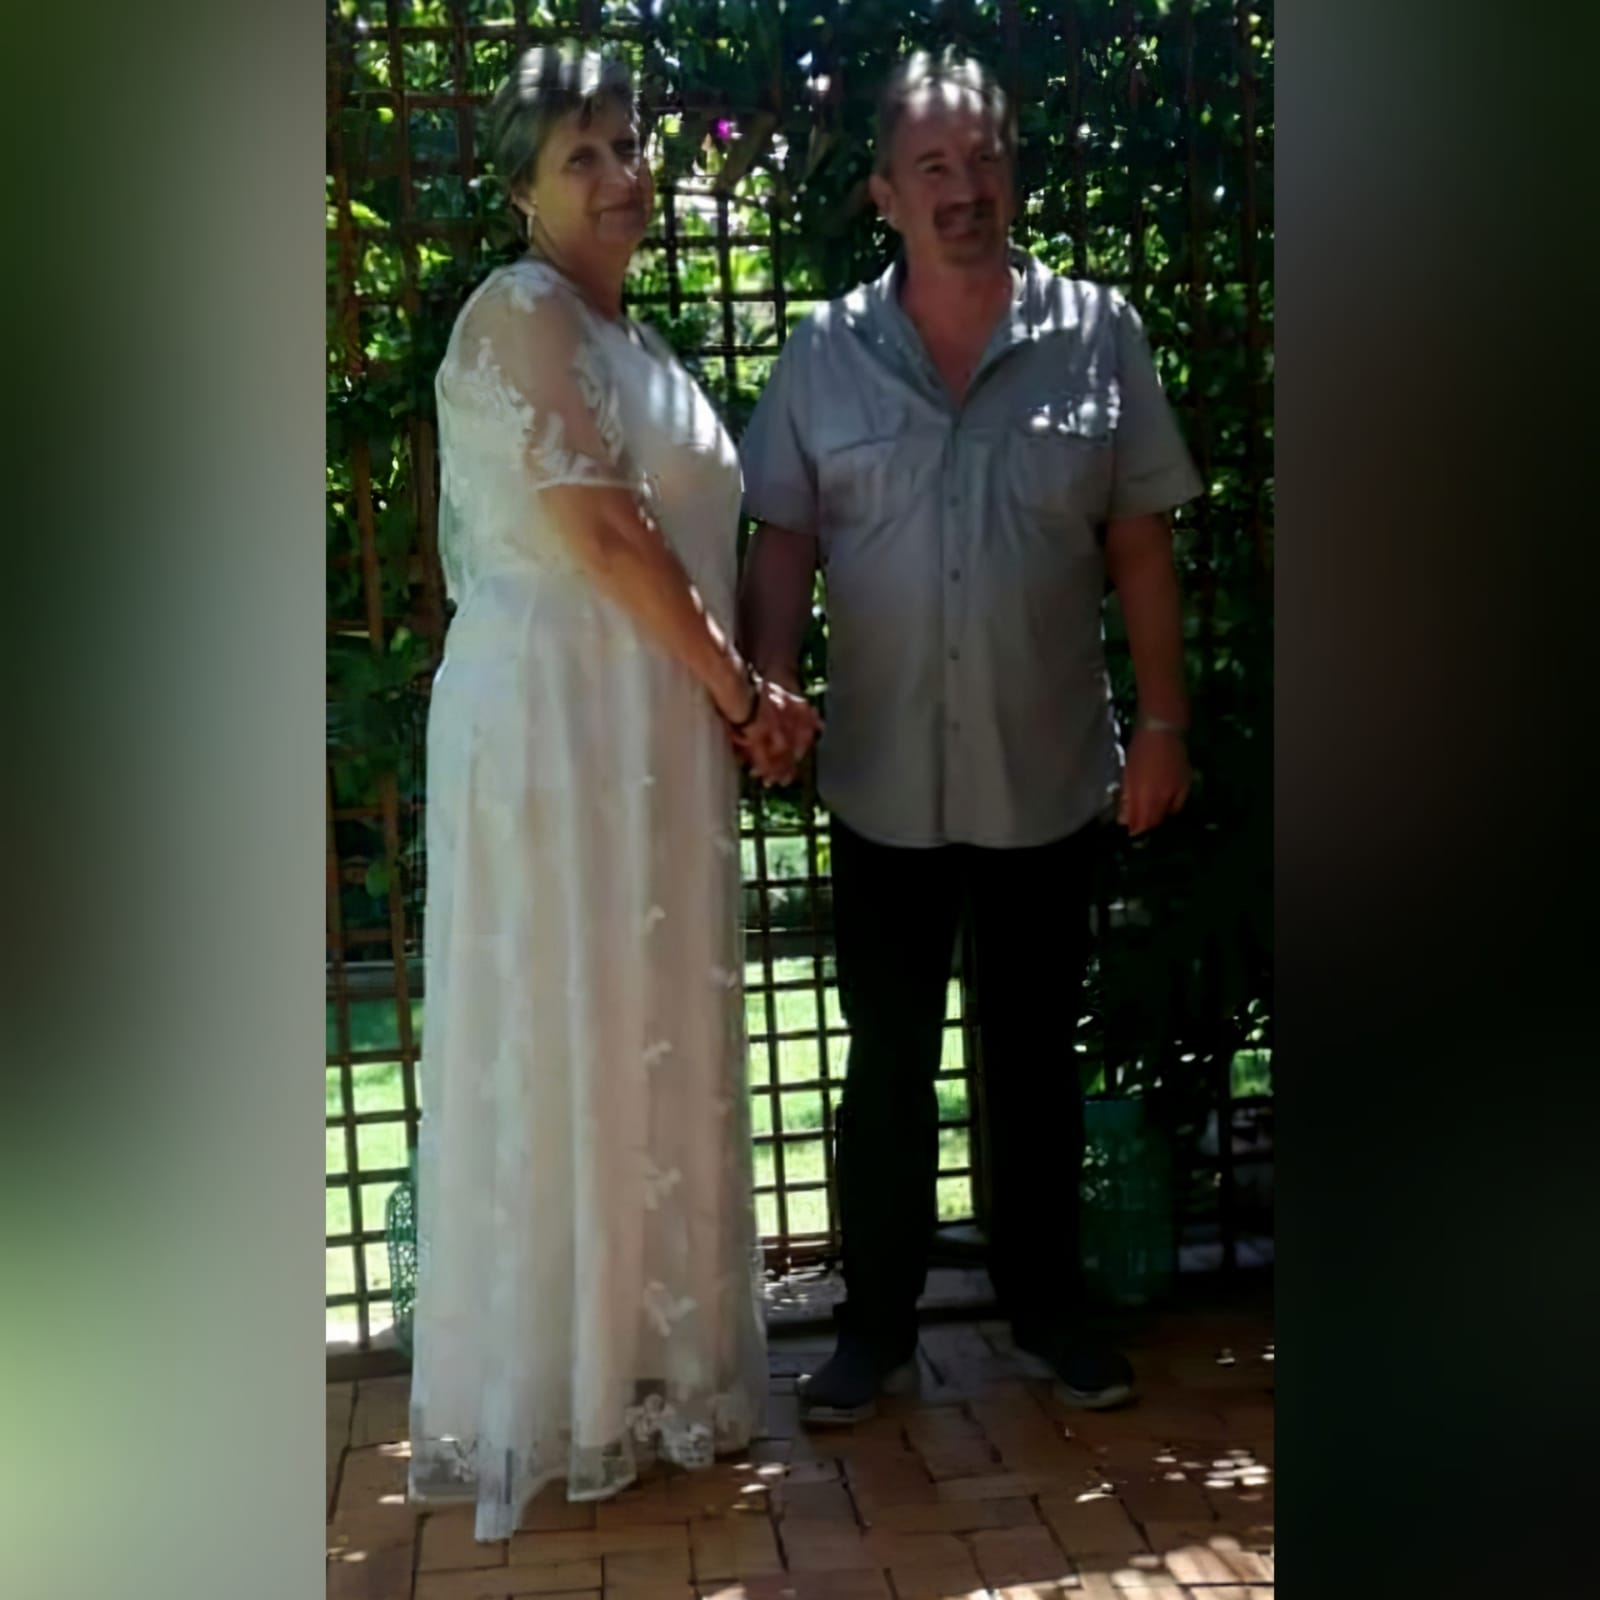 Simple elegant off white fully lace wedding dress 4 wedding dress designed and made for my client in south africa johannesburg. A simple elegant off white fully lace wedding dress. With a v neckline and wide sheer bell sleeves.